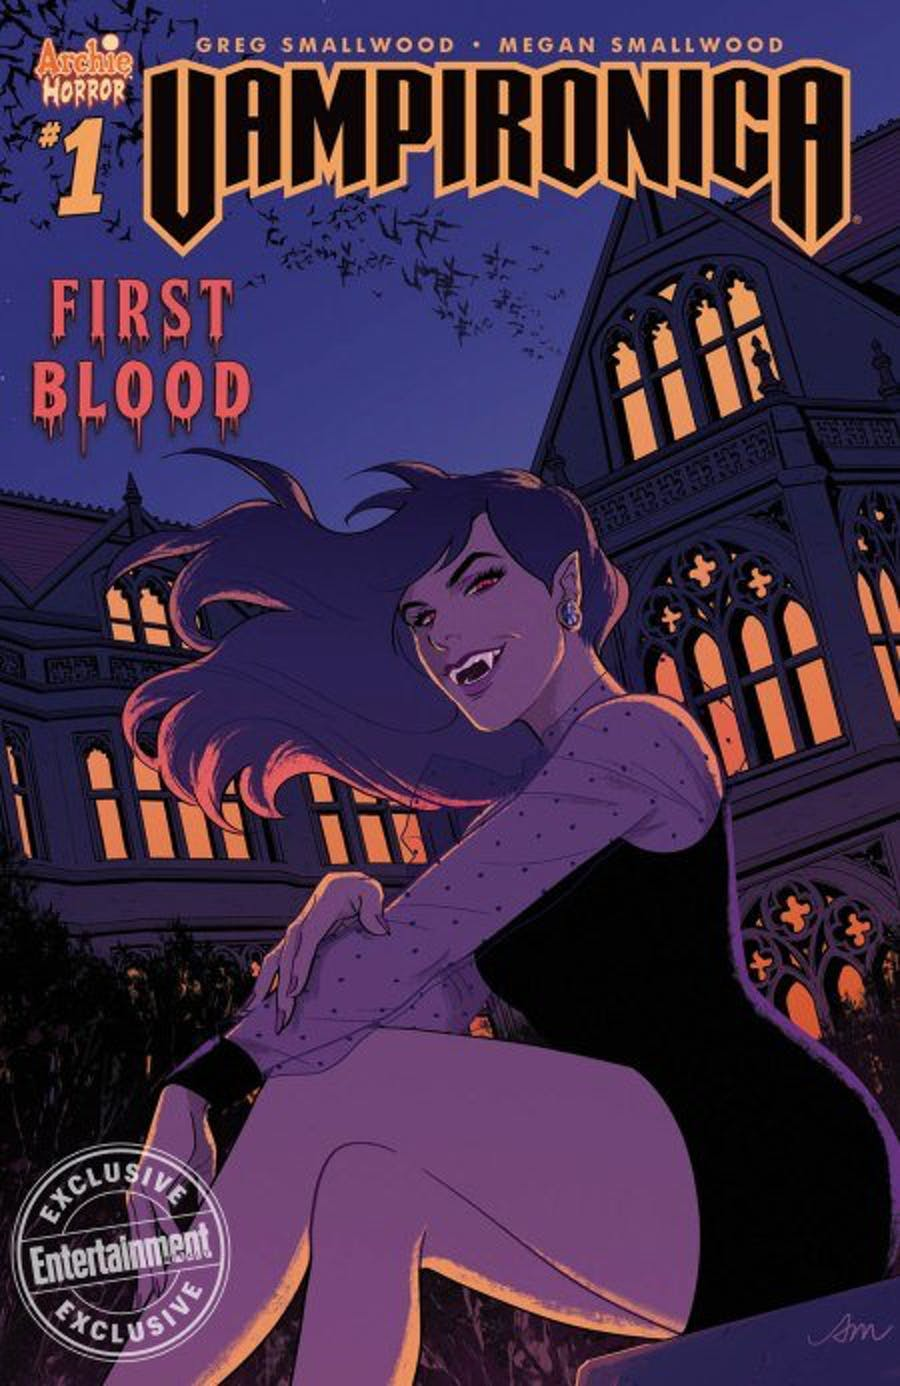 Cover of ' Vampironica' issue.